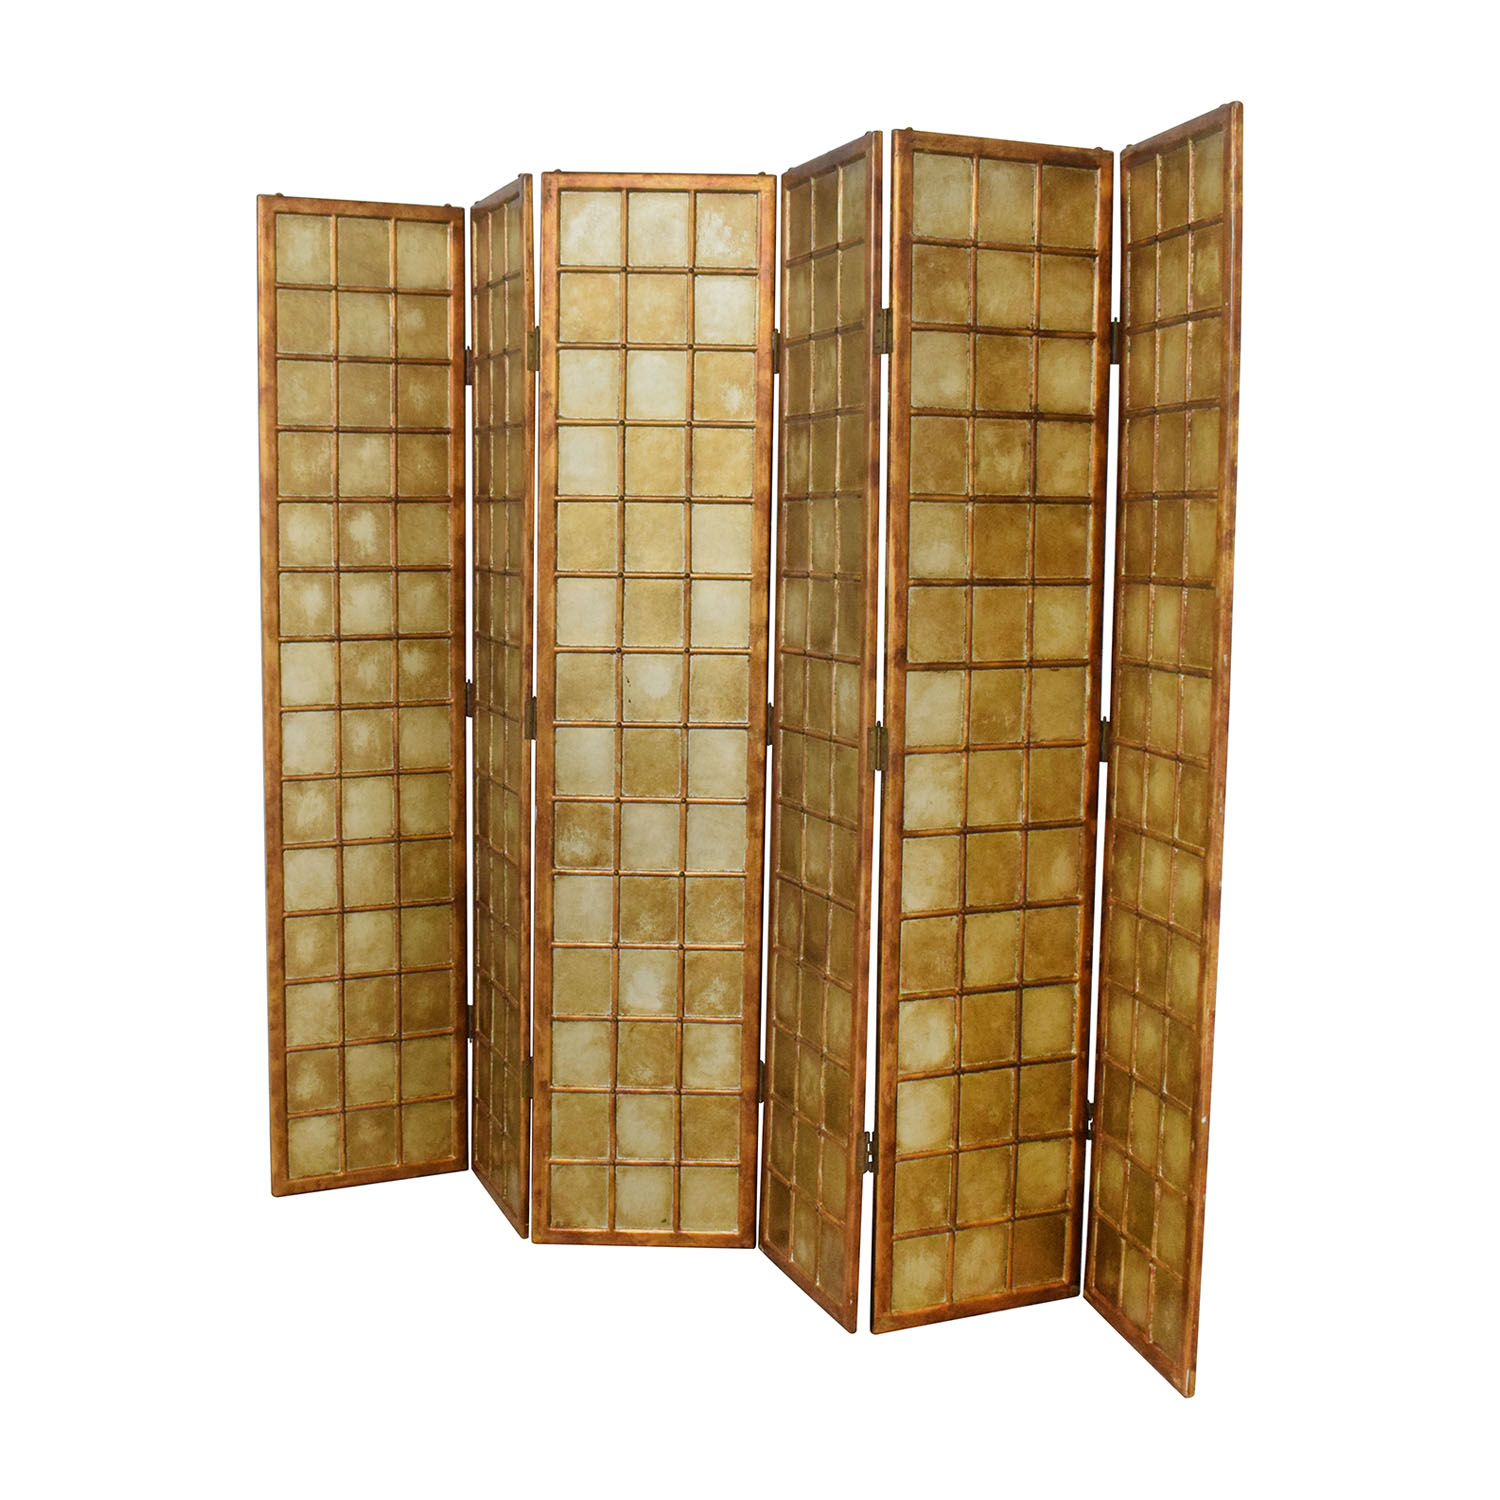 Bloomingdale's Bloomingdale's Six Panel Decorative Screen on sale